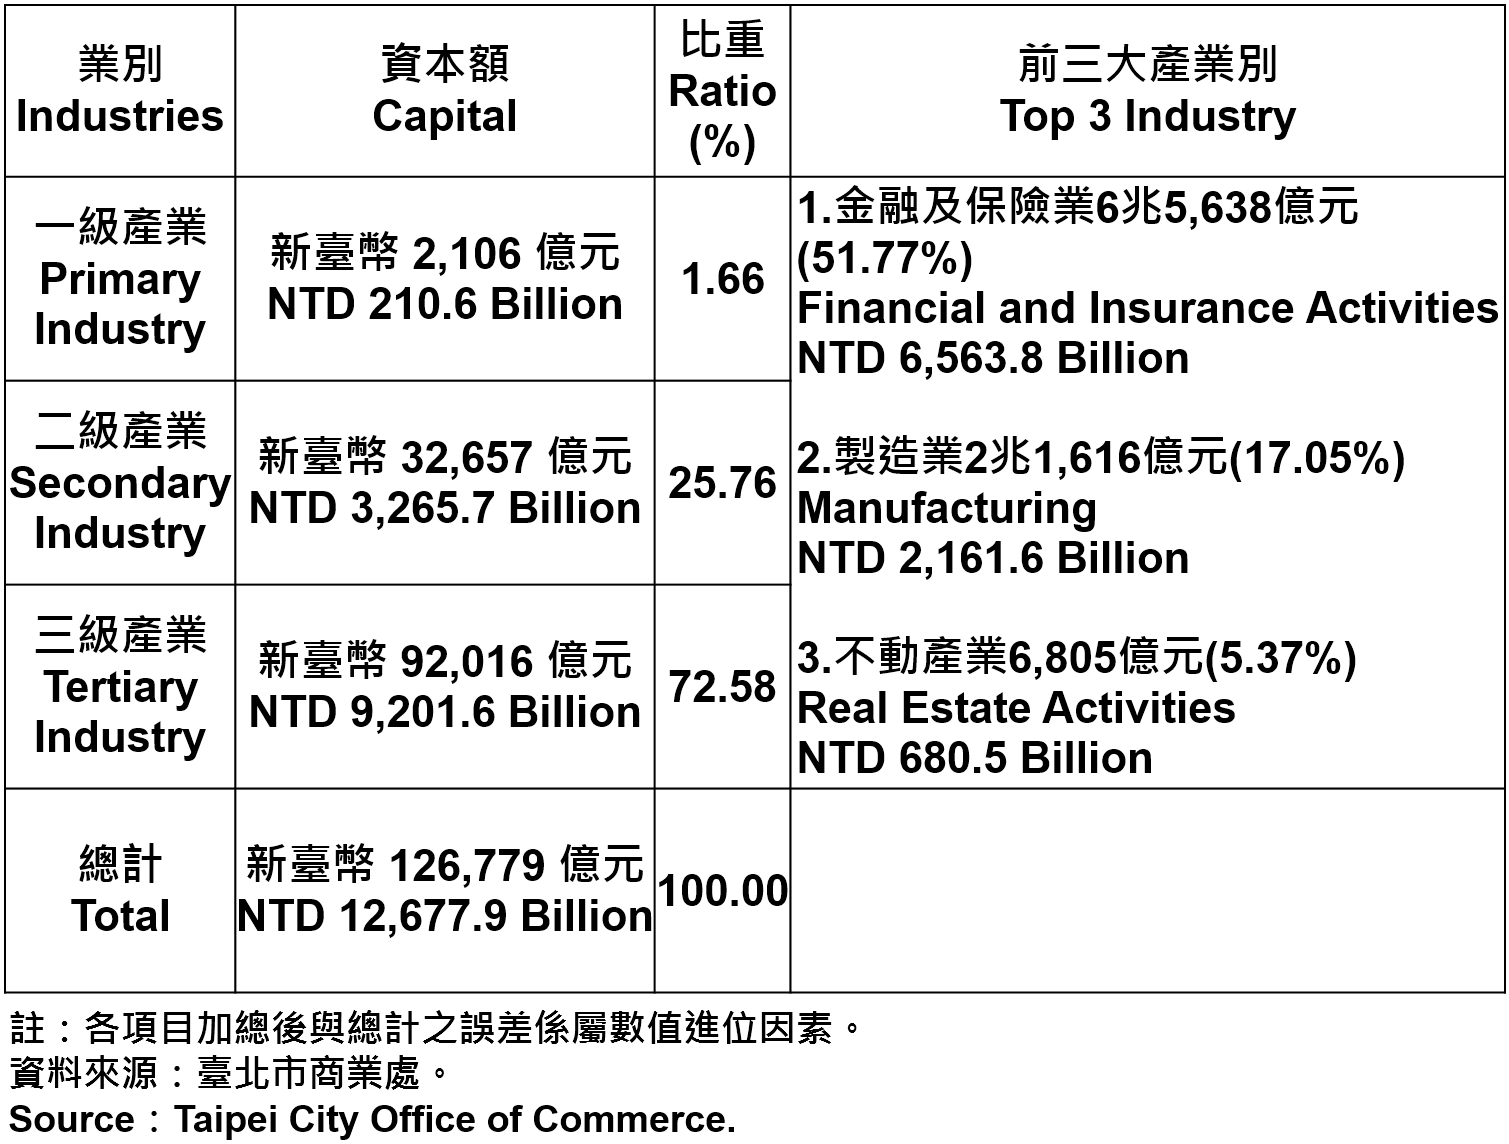 臺北市登記之公司資本總額—2019Q2 Total Capital of Companies and Firms Registered in Taipei City—2019Q2